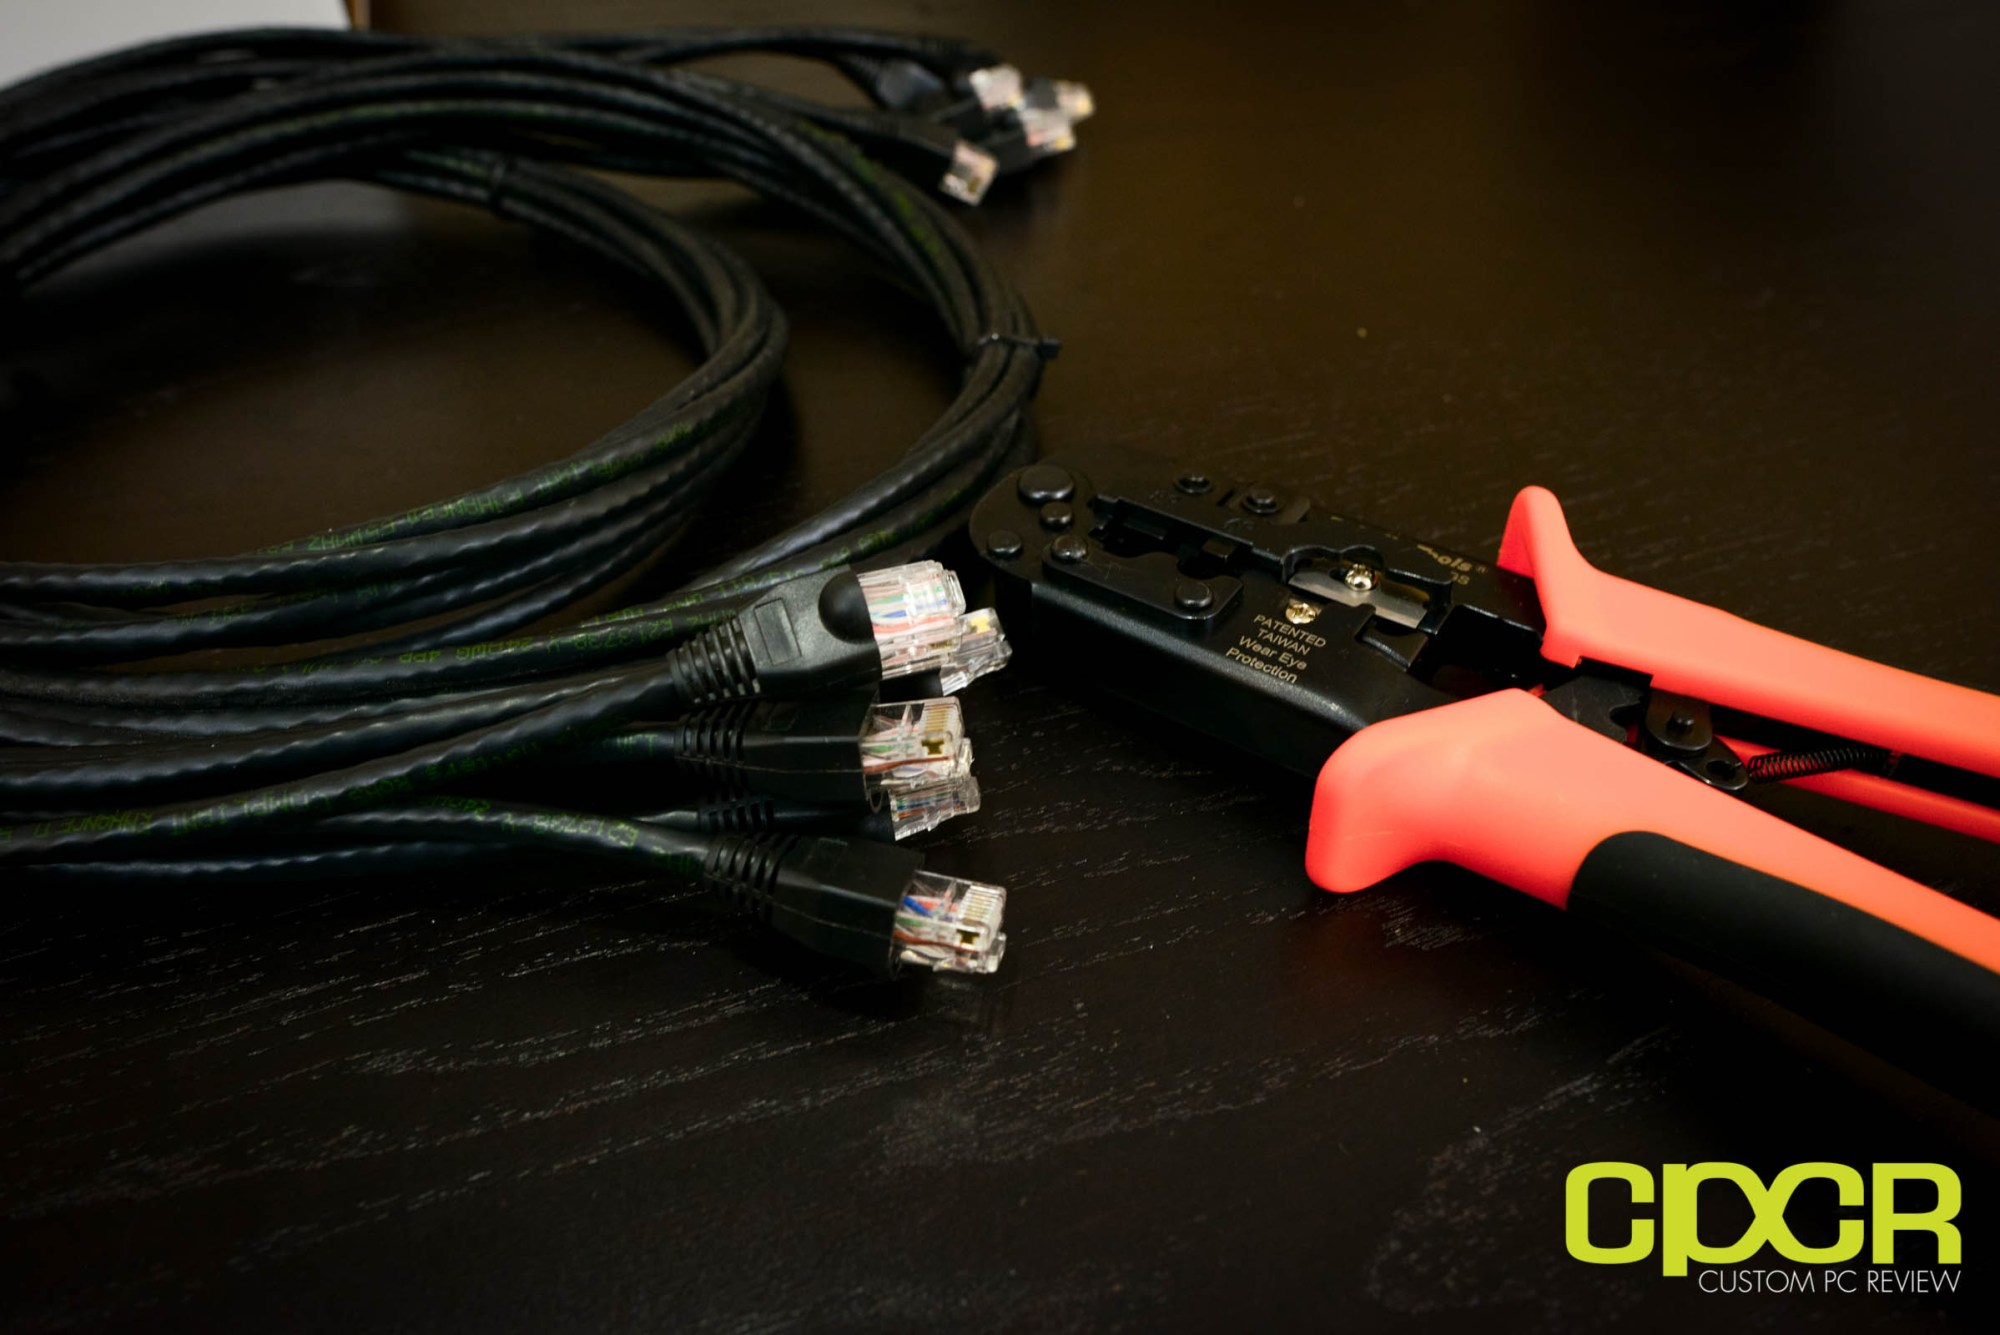 hight resolution of how to make ethernet cables to save money